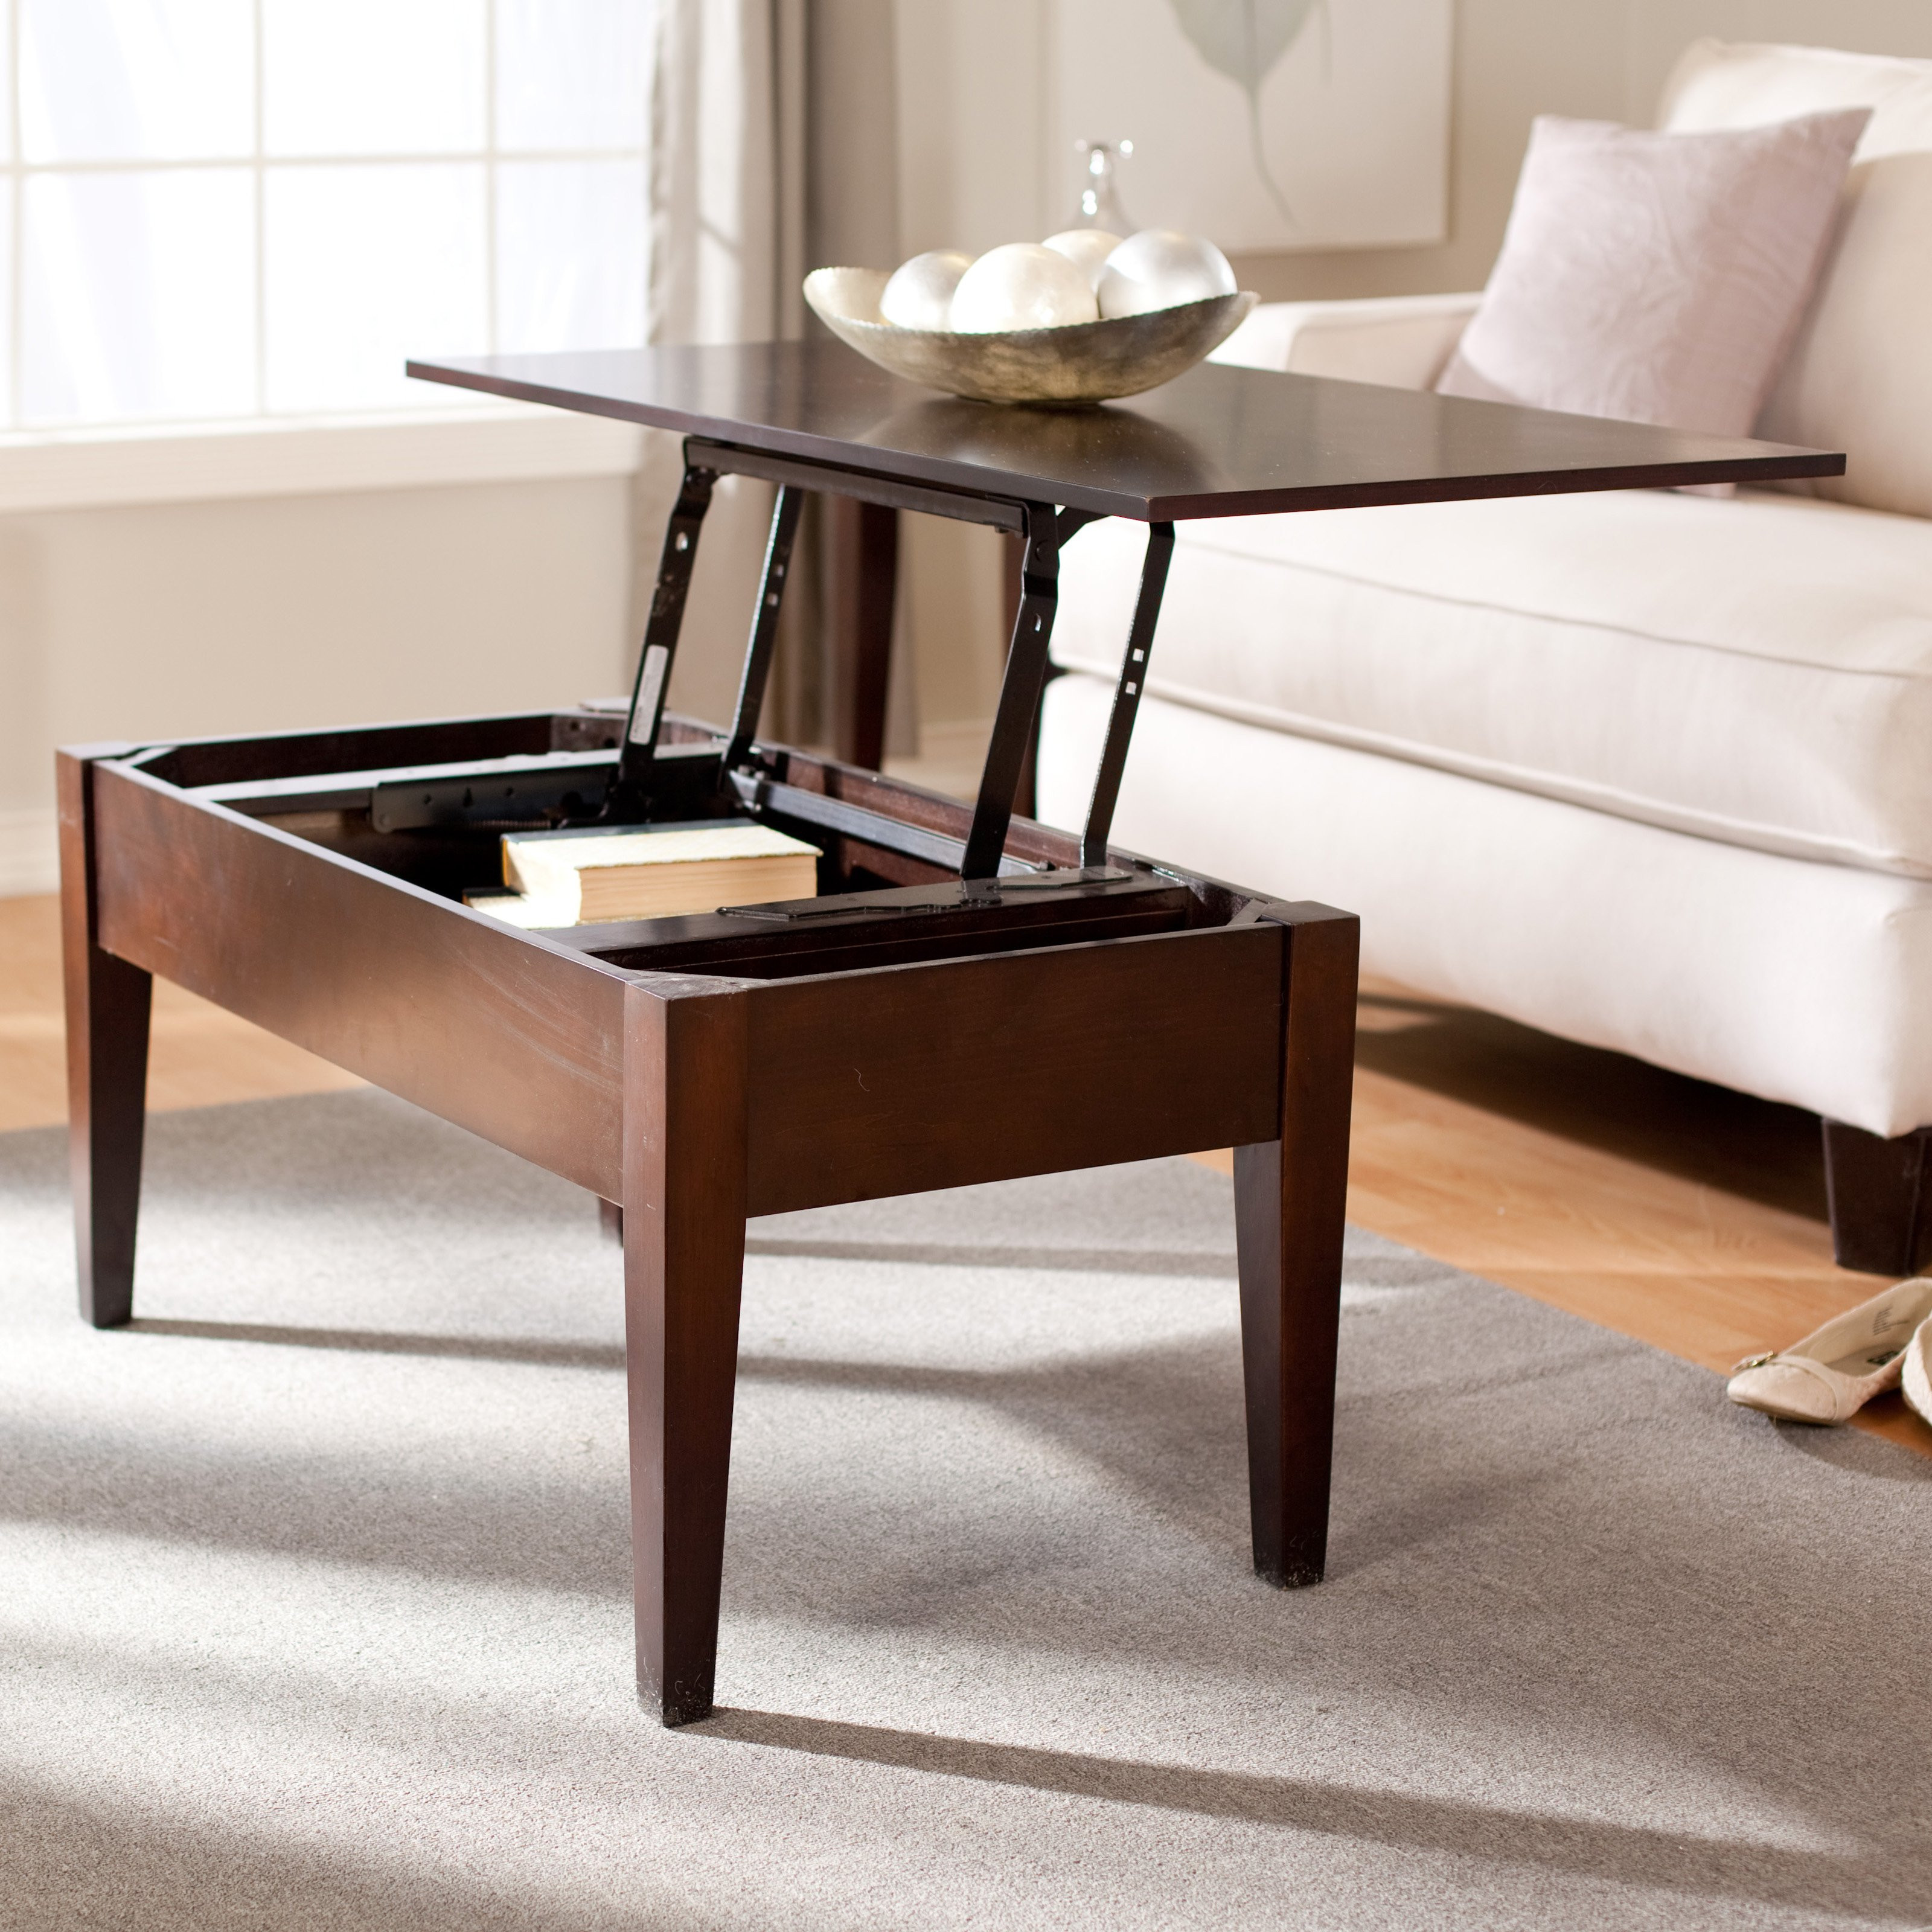 Best ideas about Coffee Table Lift Top . Save or Pin Turner Lift Top Coffee Table Espresso Coffee Tables at Now.